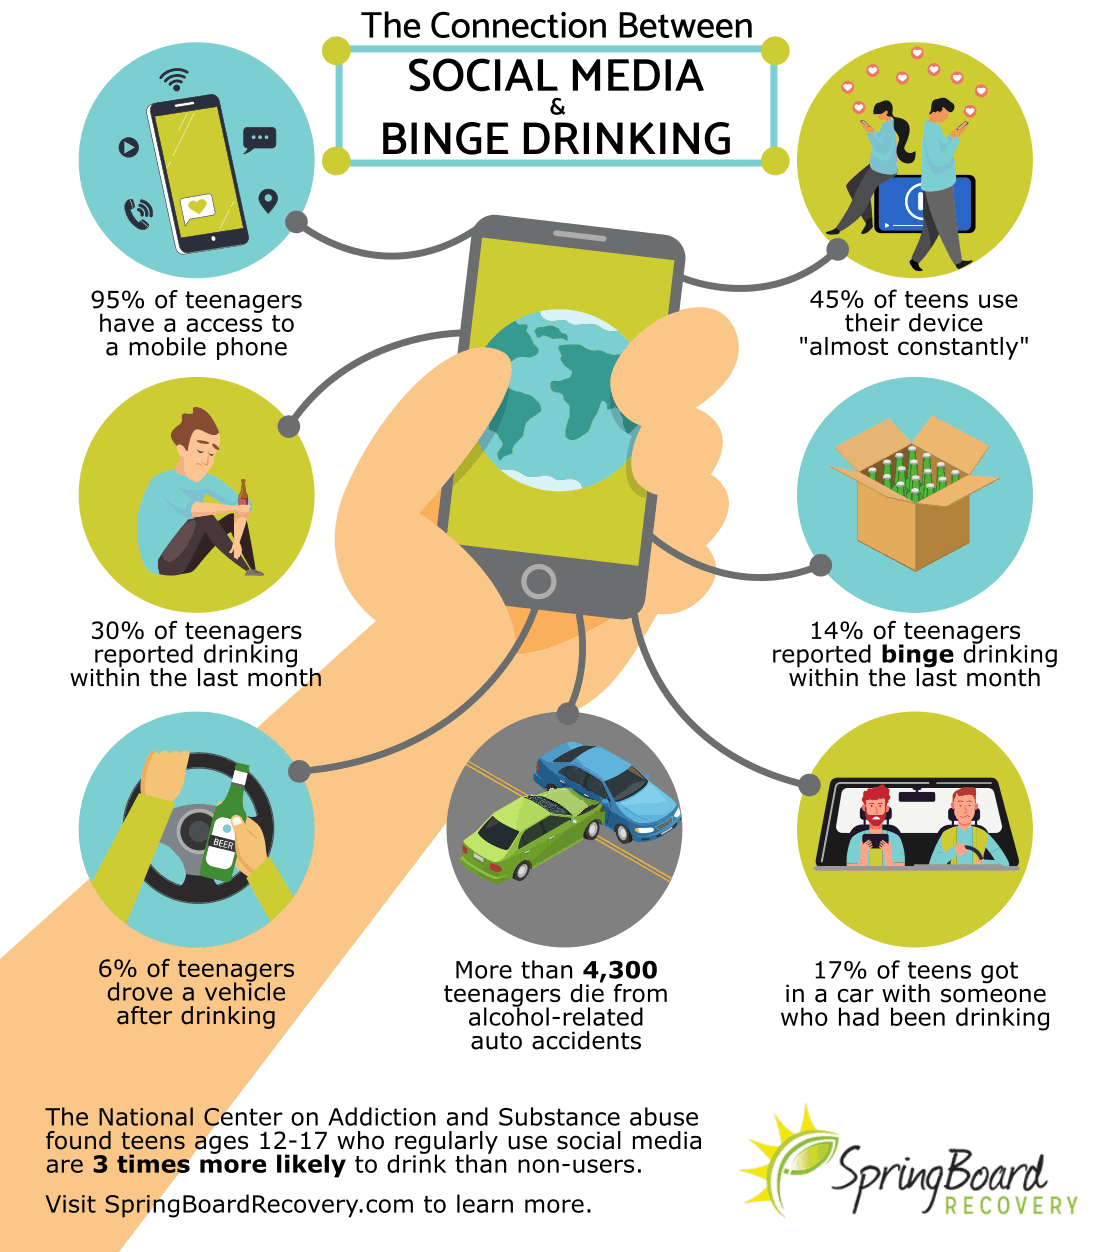 What Role Does Social Media Play in Binge Drinking?